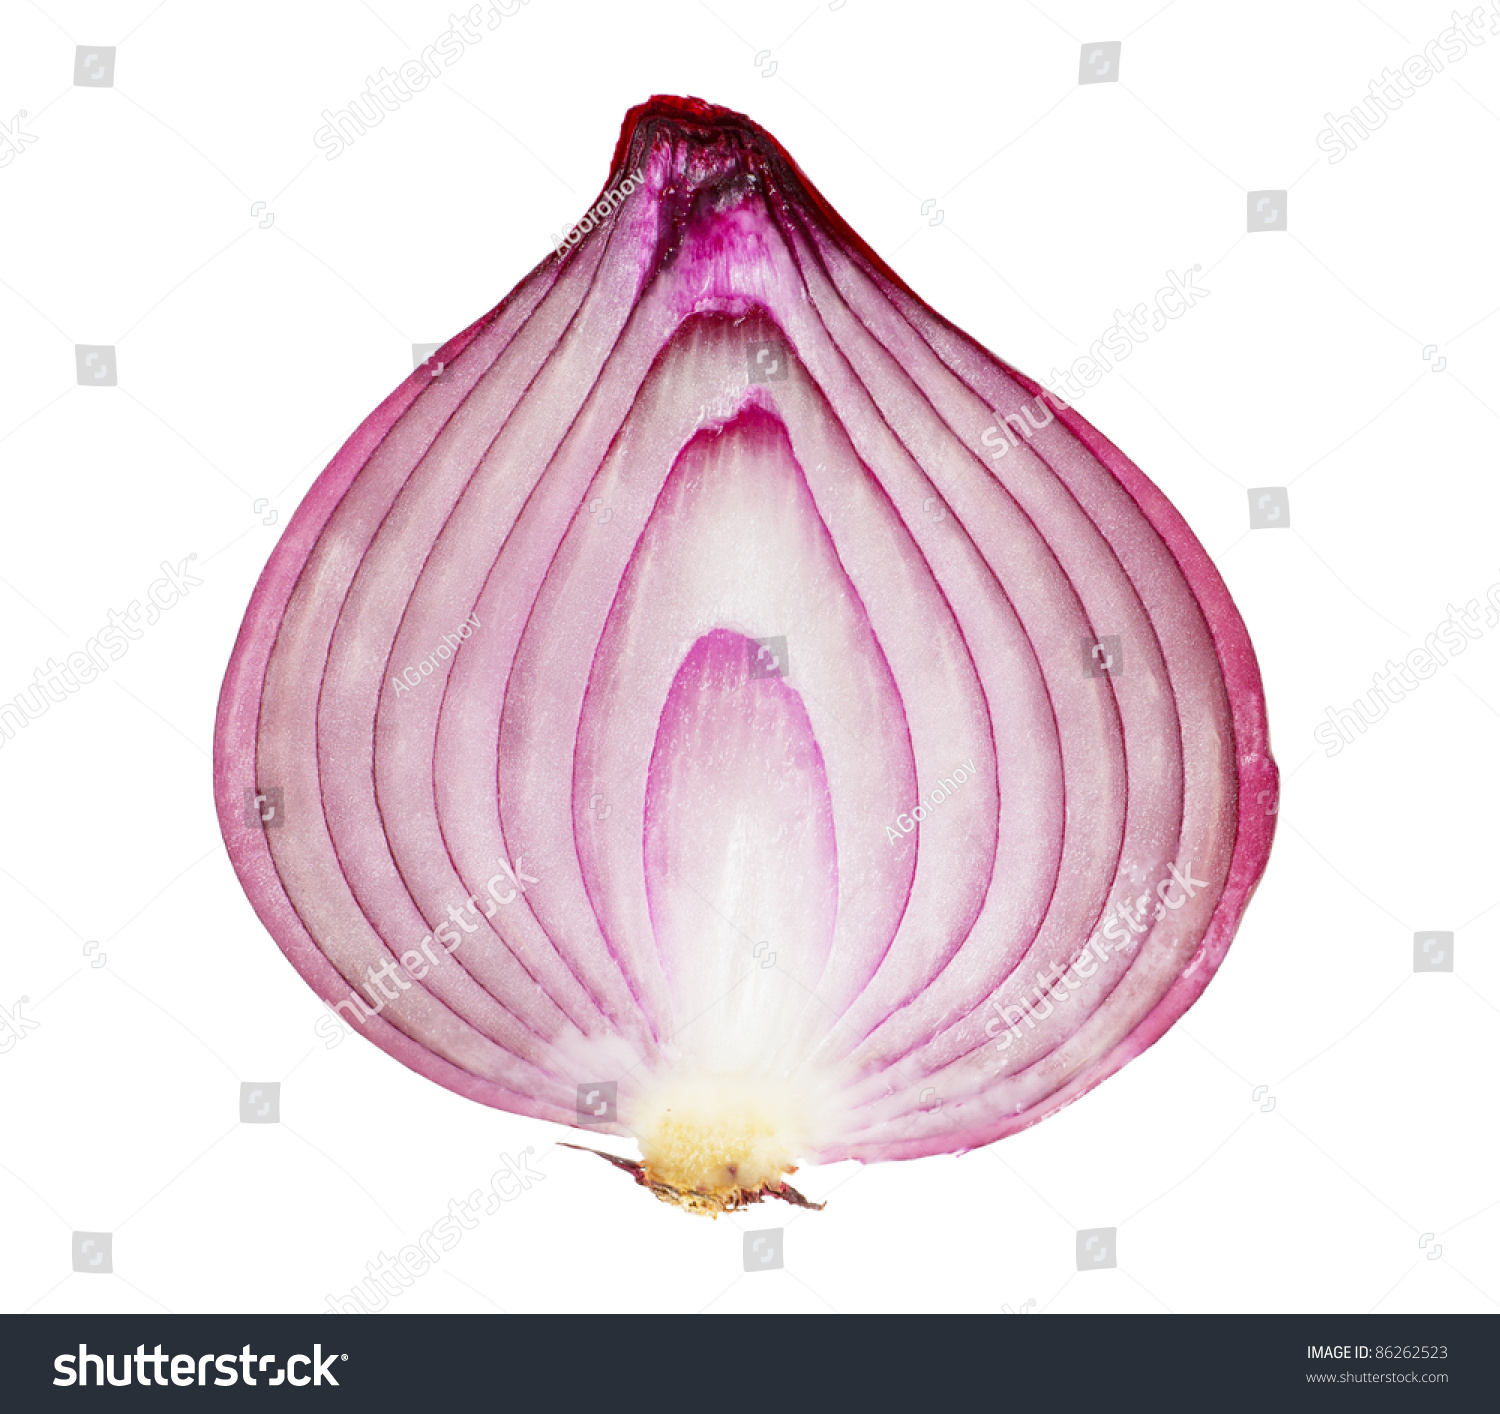 Red Onion Sliced Half Isolated On Stock Photo 86262523 Shutterstock